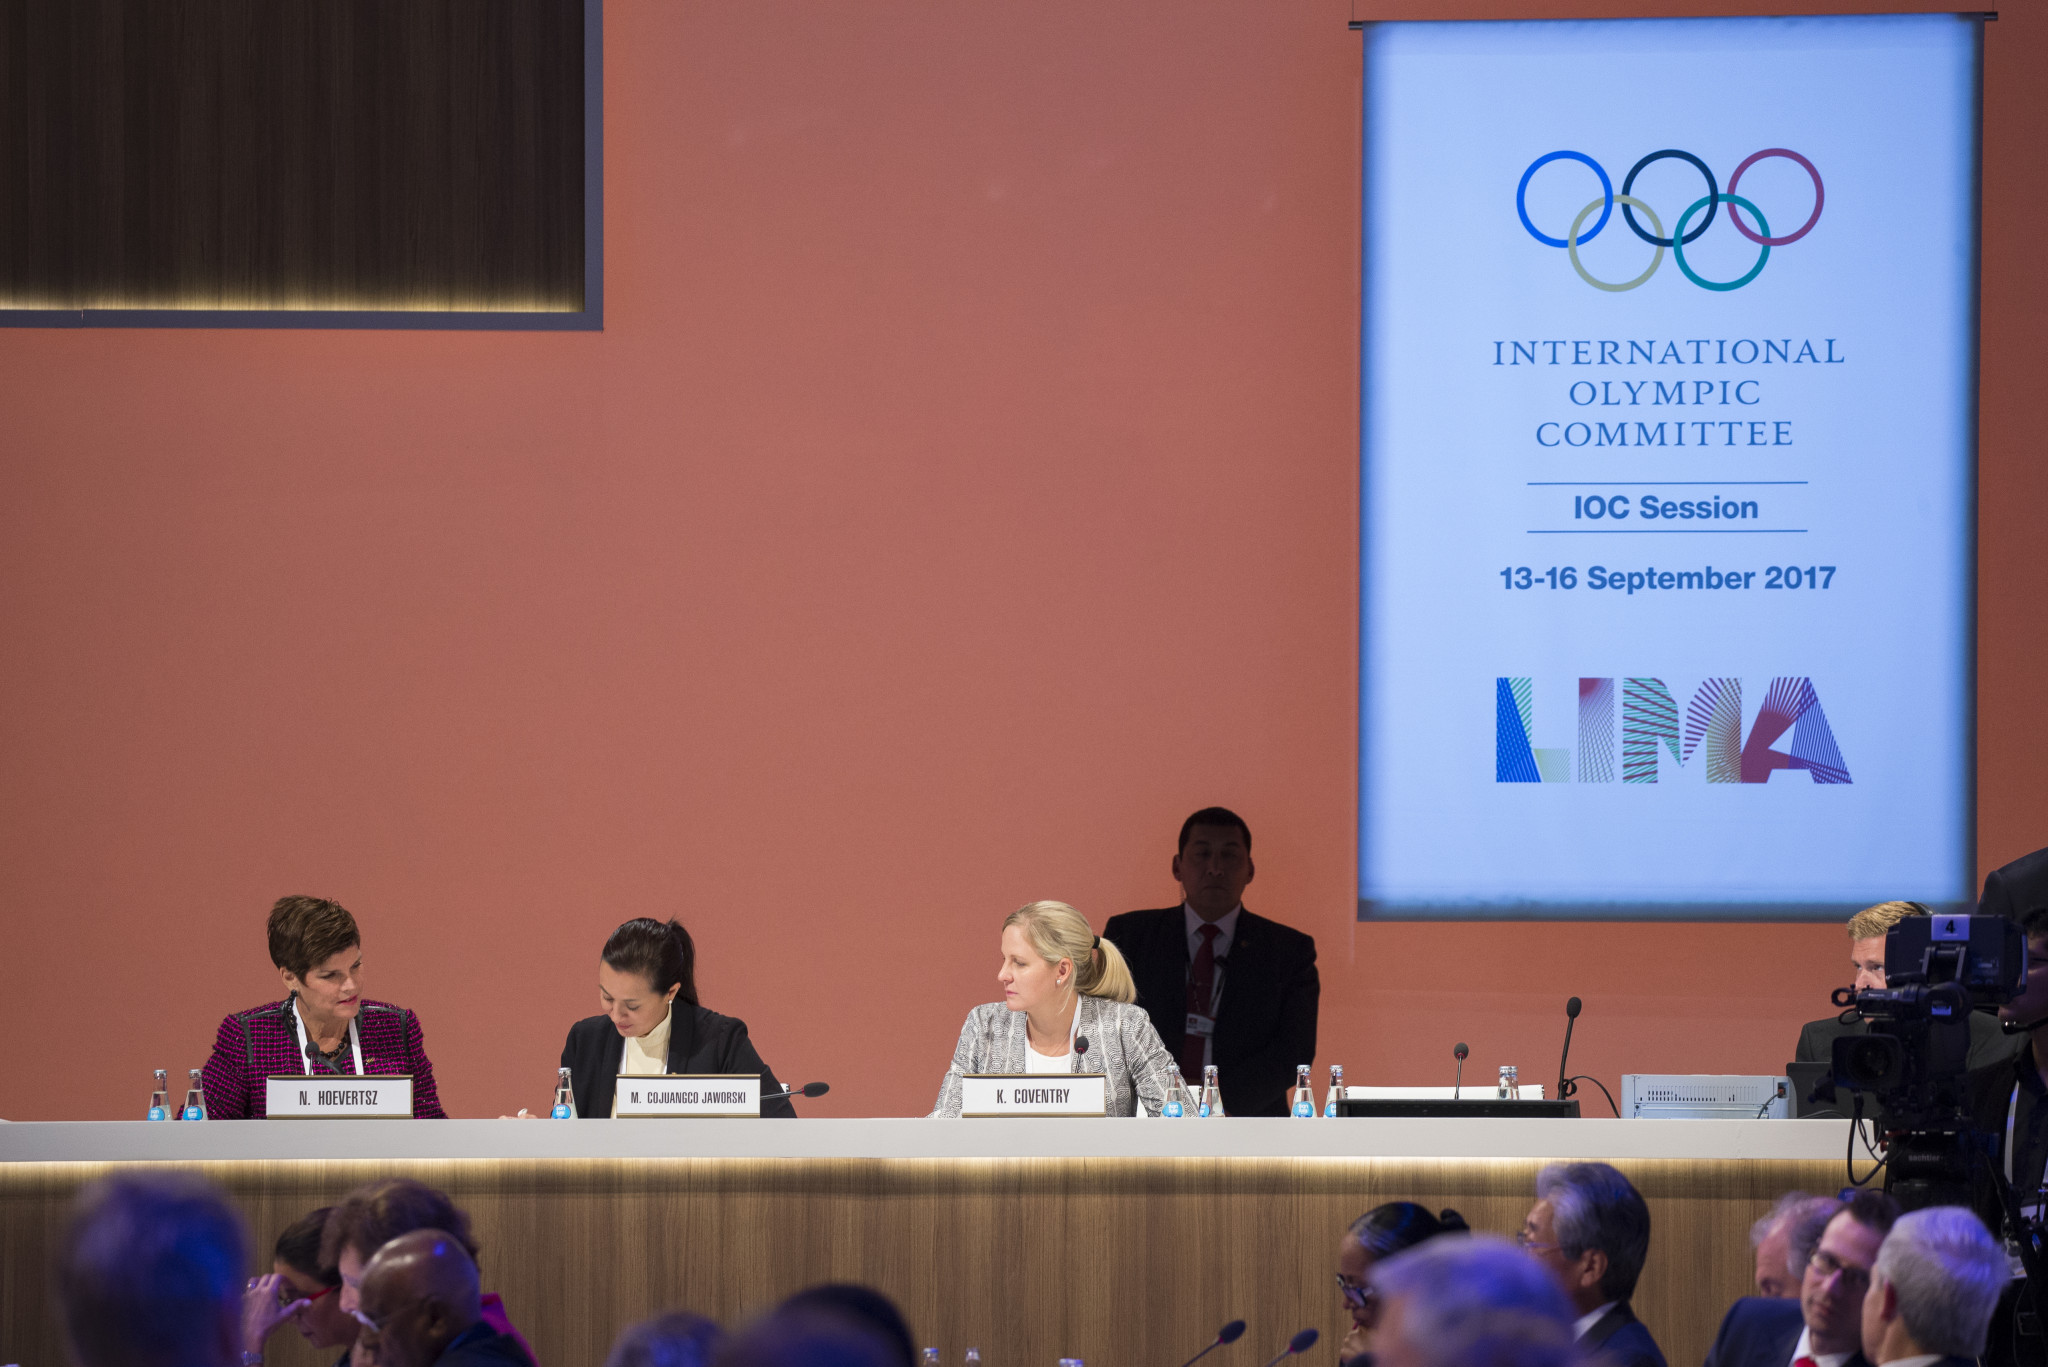 131st International Olympic Committee Session: Day two